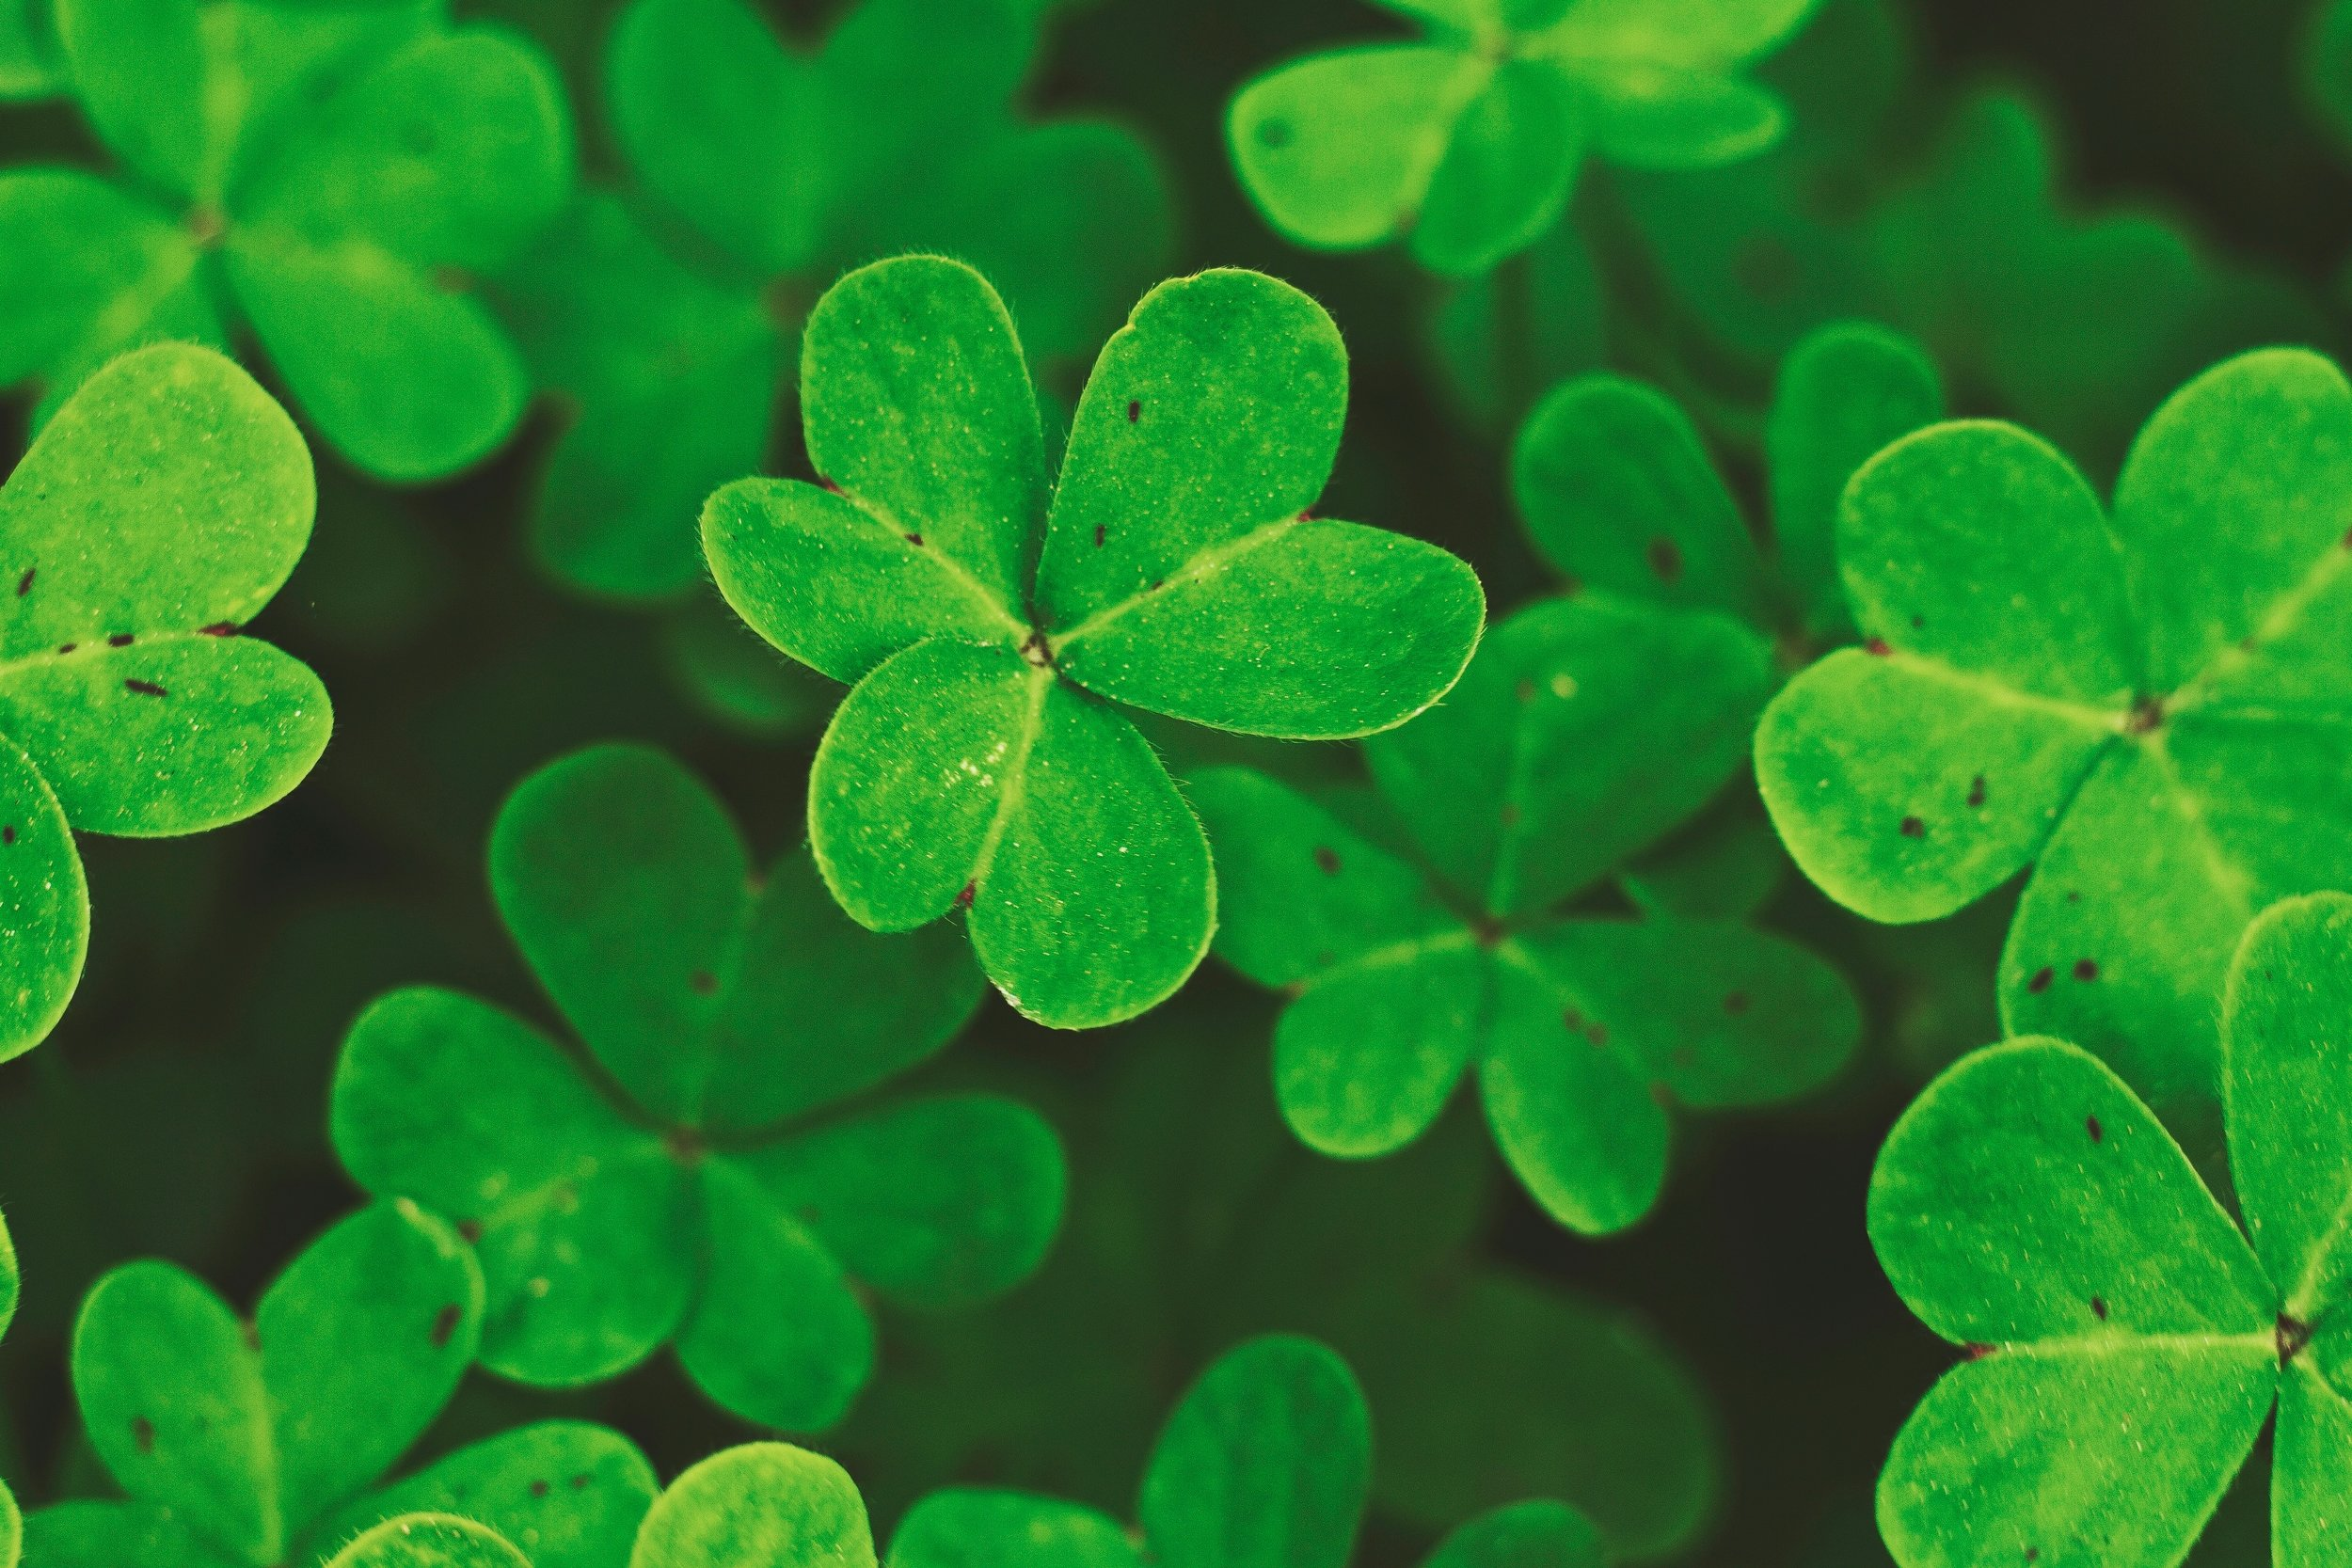 The Shamrock is the traditional emblem of this famous Irish festival